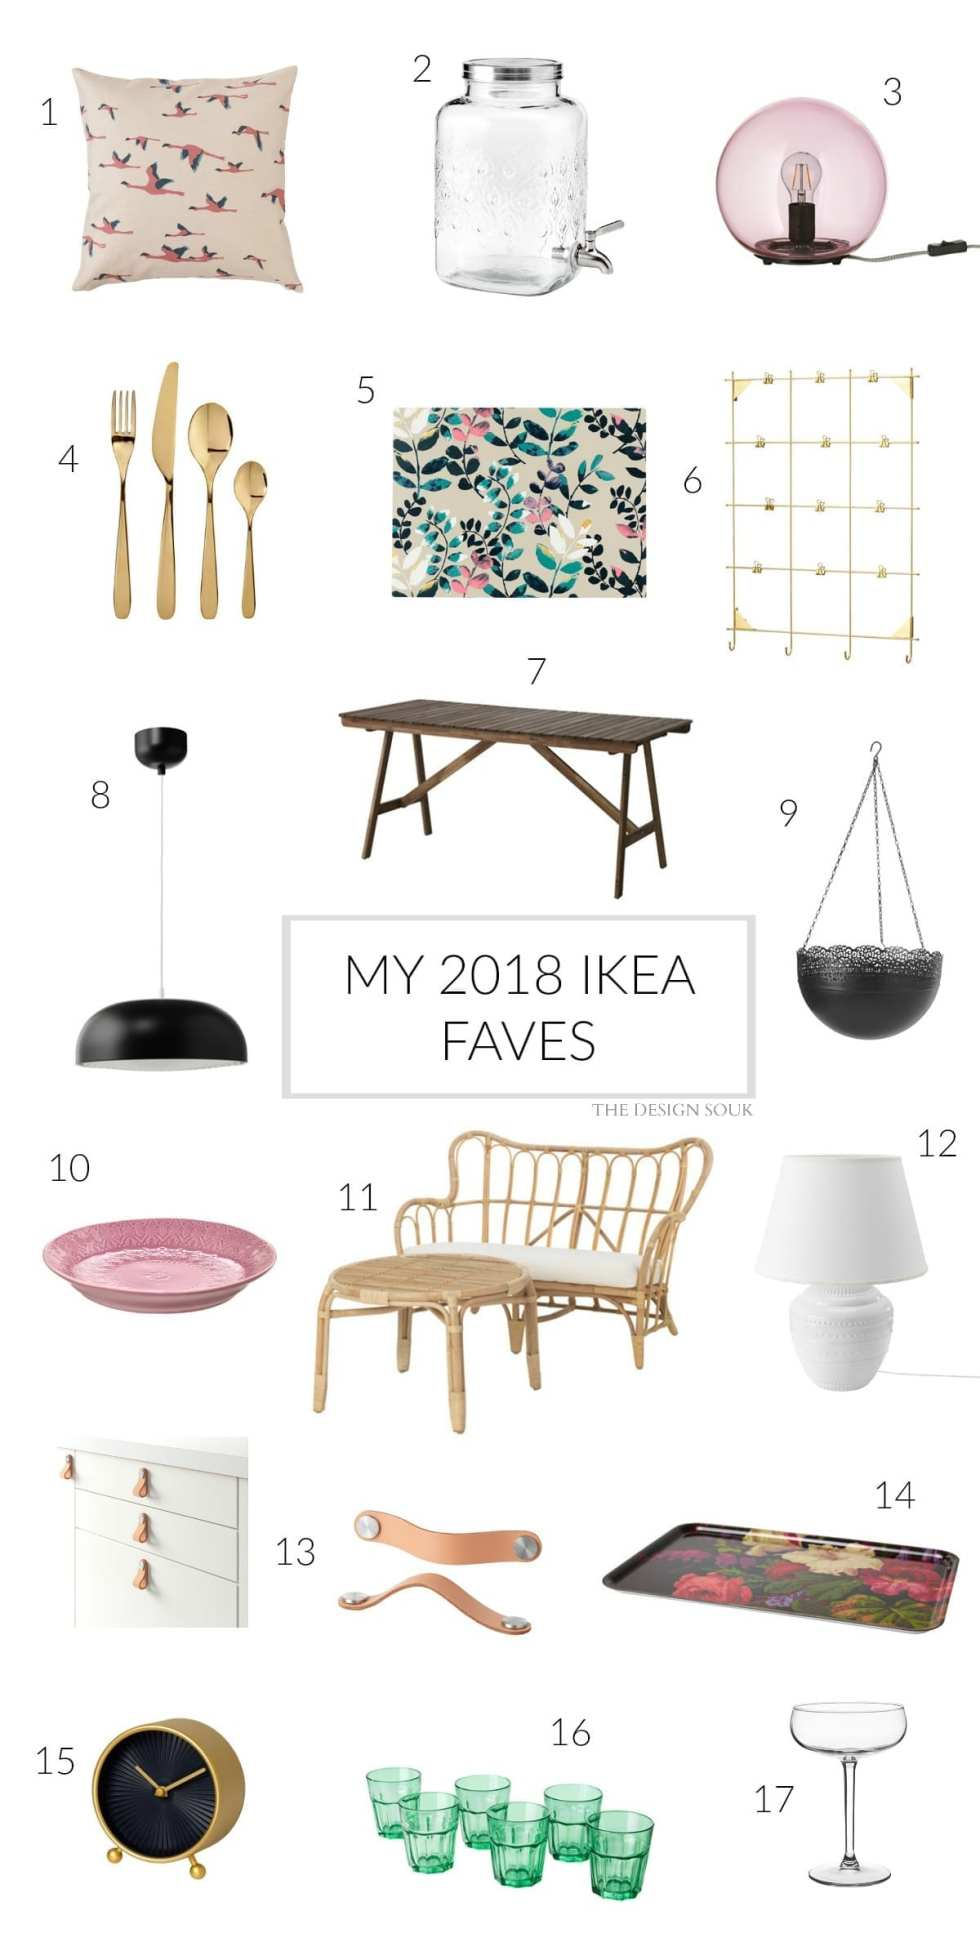 My 2018 IKEA Faves | THE DESIGN SOUK | www.thedesignsouk.com